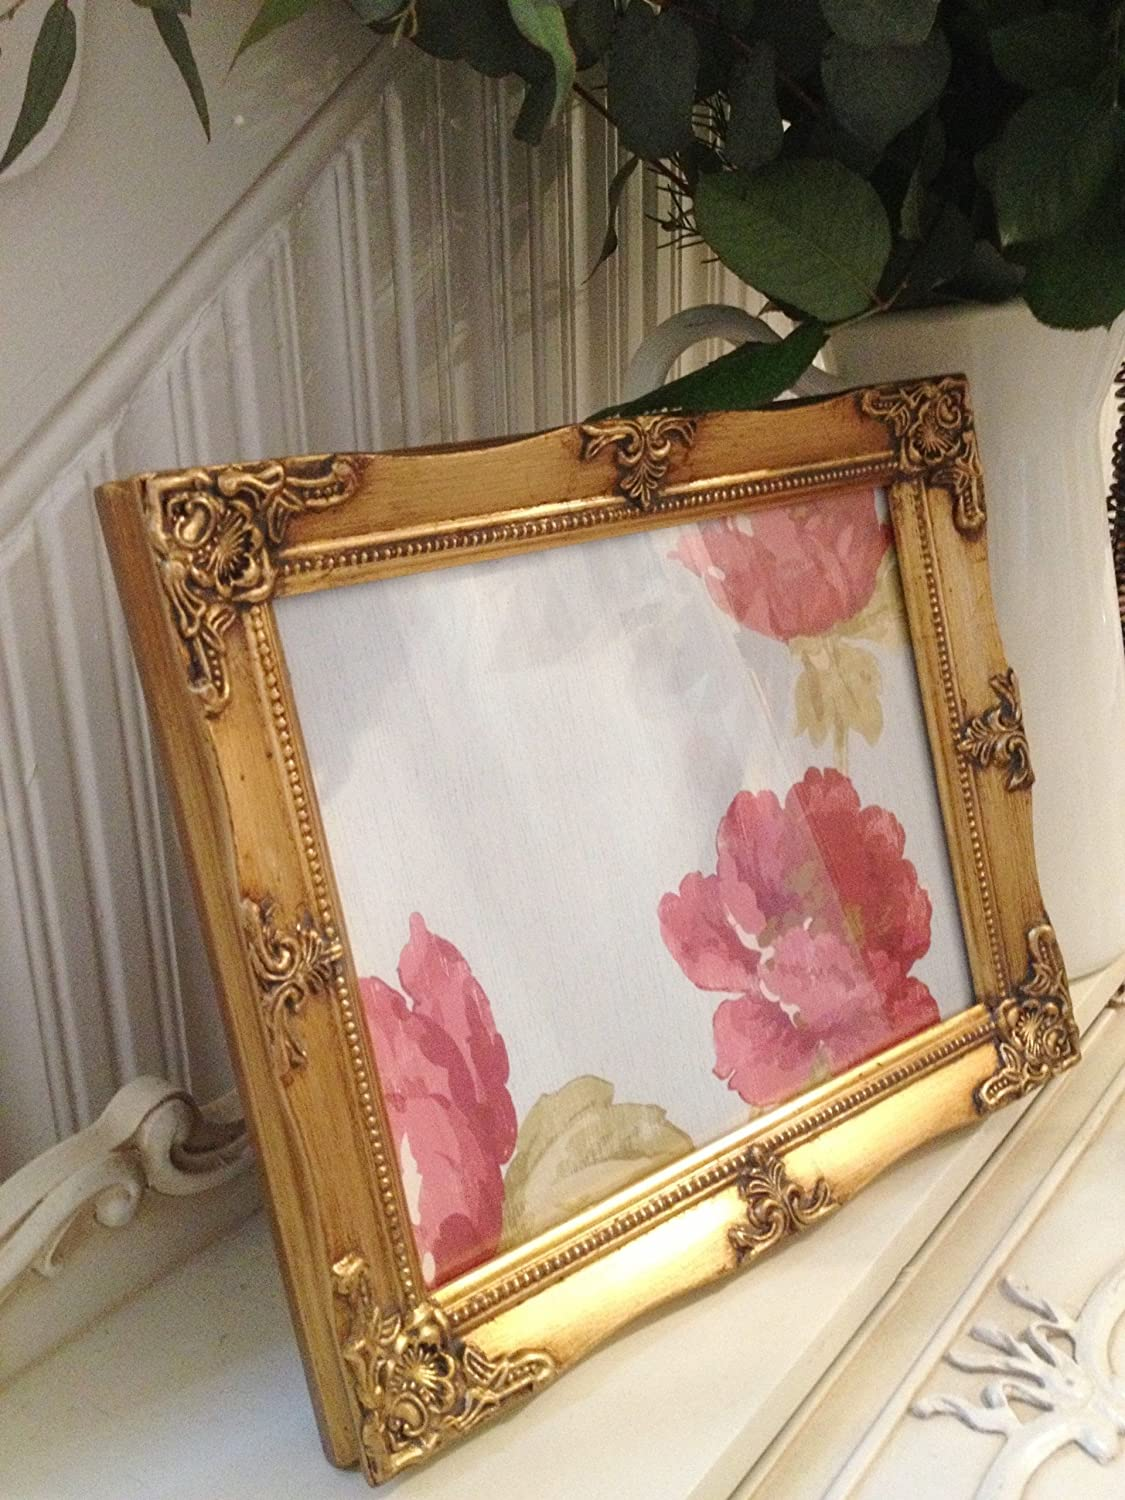 Antique Gold Ornate Picture frame 8x10: Amazon.co.uk: Kitchen & Home